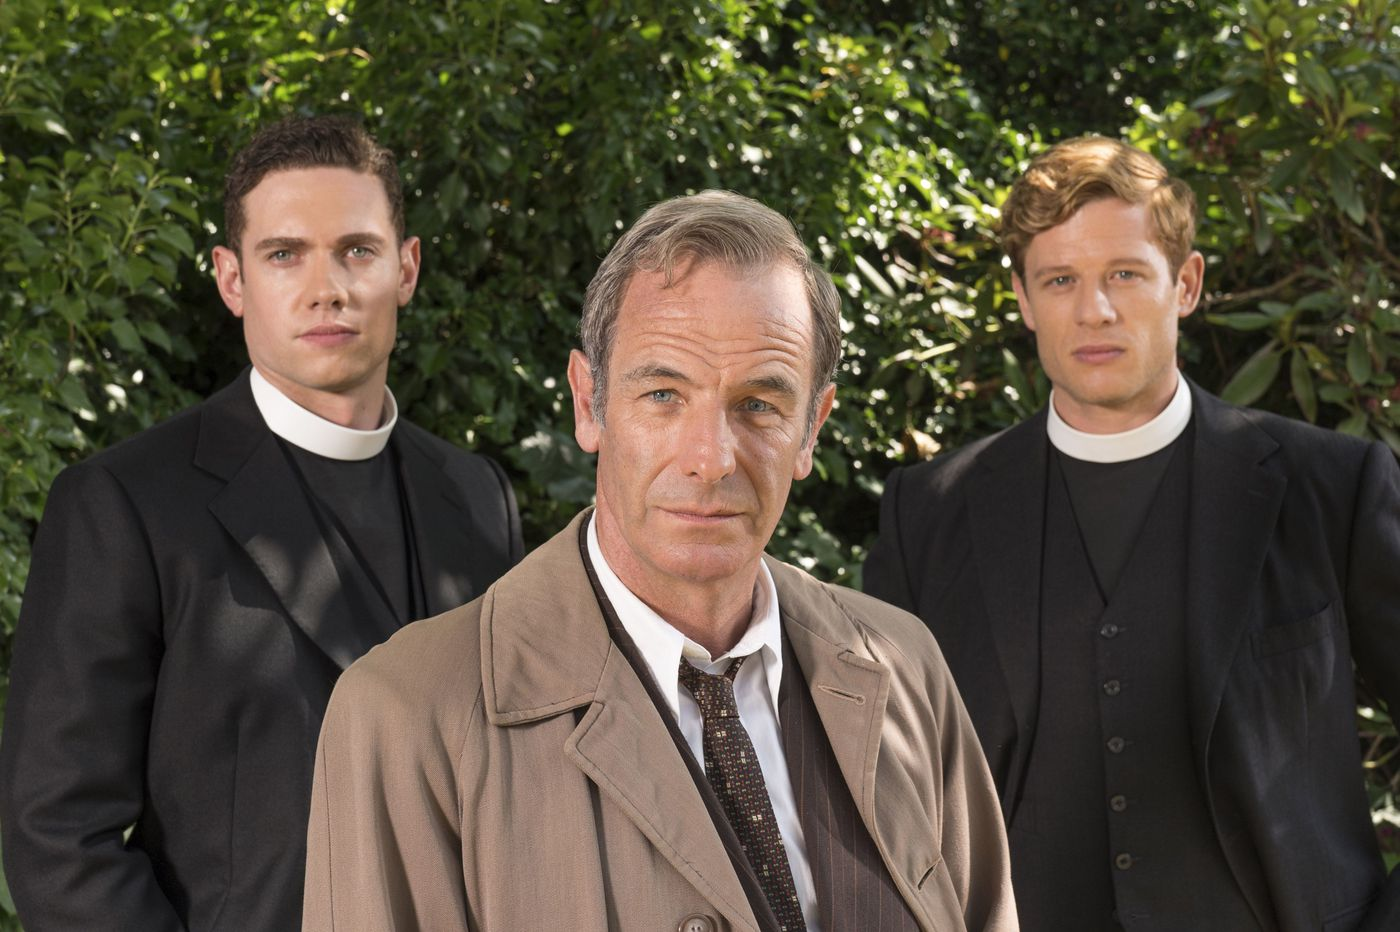 TV picks: 'Grantchester,' 'Suits' (and a spin-off), 'Queer Eye' and more